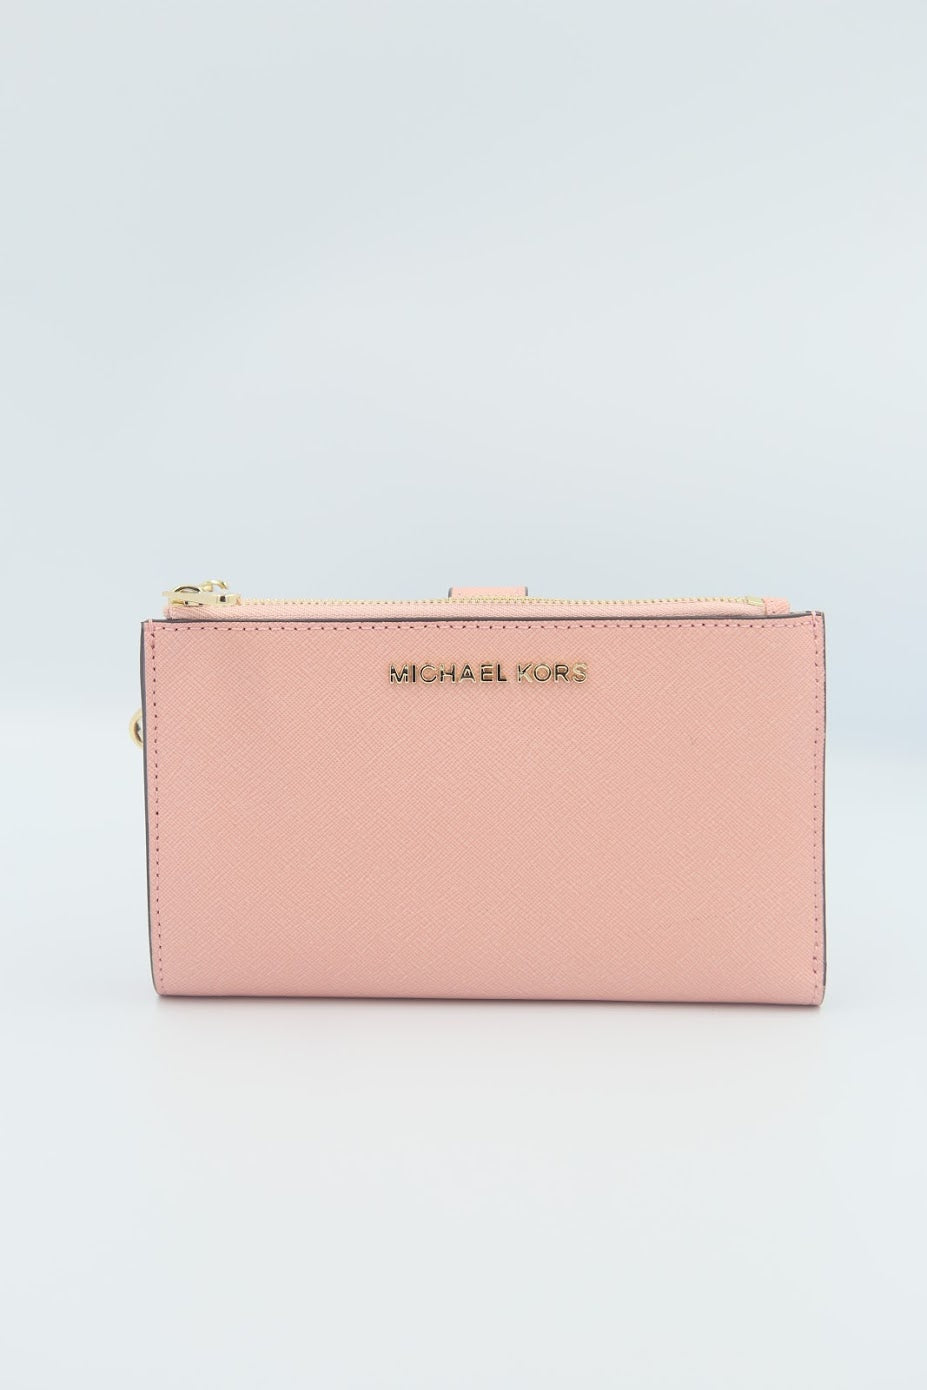 Michael Kors Jet Set Travel Double Zip Wristlet 35F8GTVW0L In Carnation